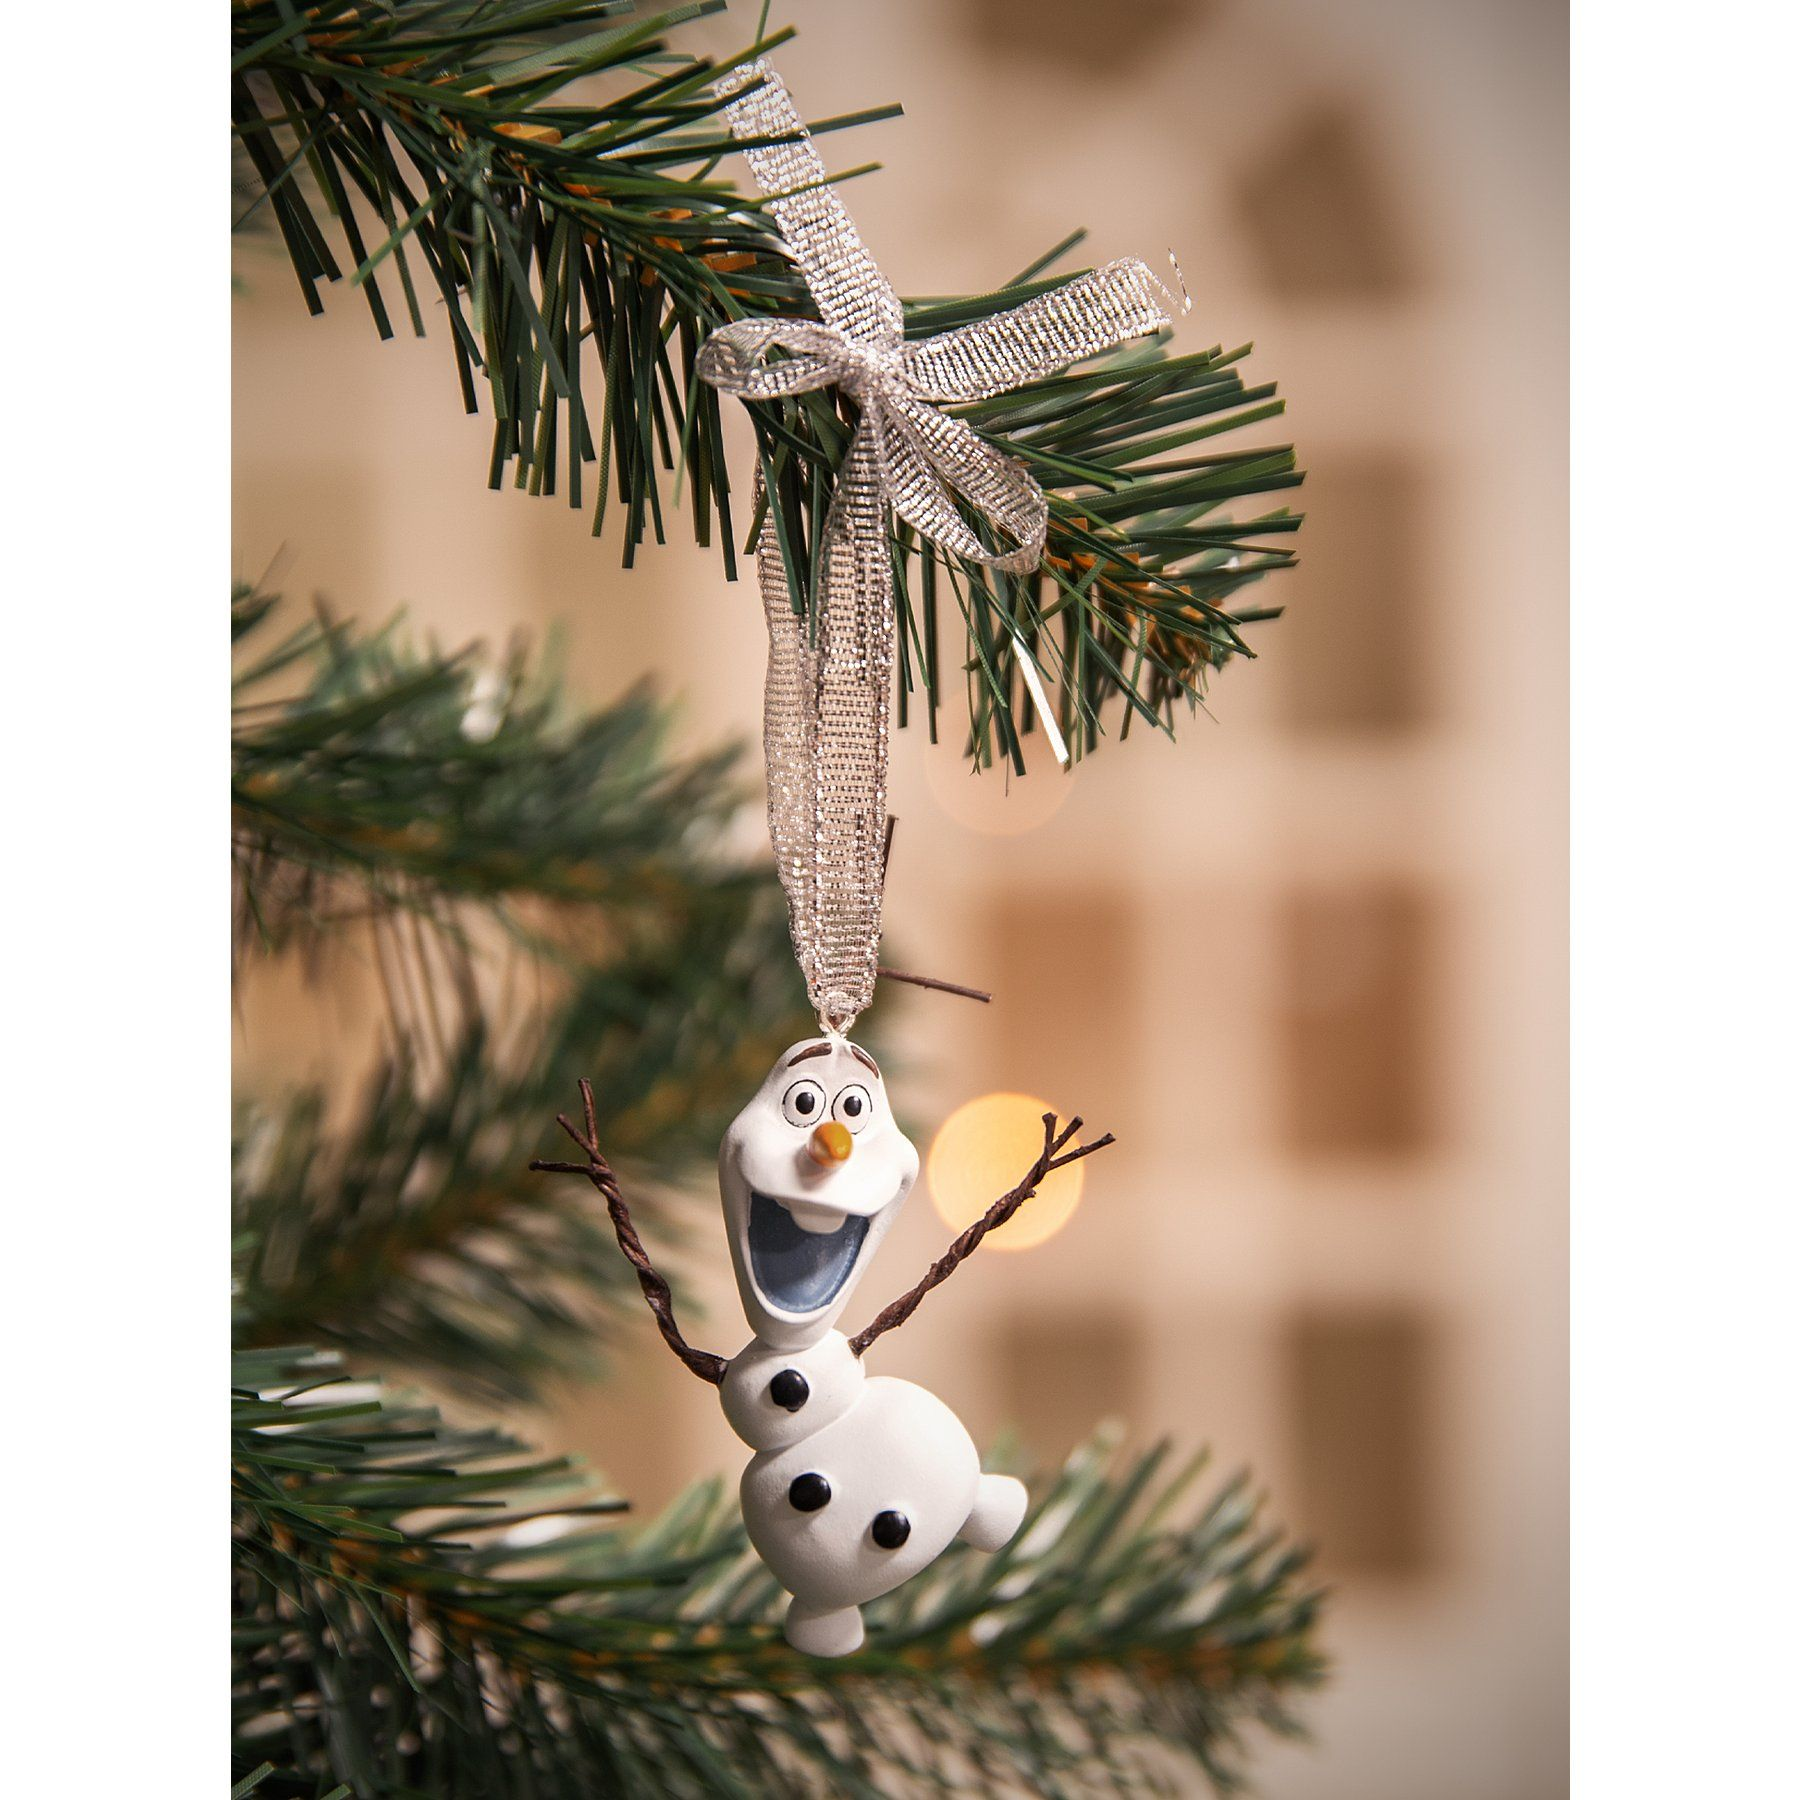 Disney Frozen Olaf Christmas Tree Decoration Christmas George Christmas Tree Decorations Tree Decorations Disney Frozen Olaf